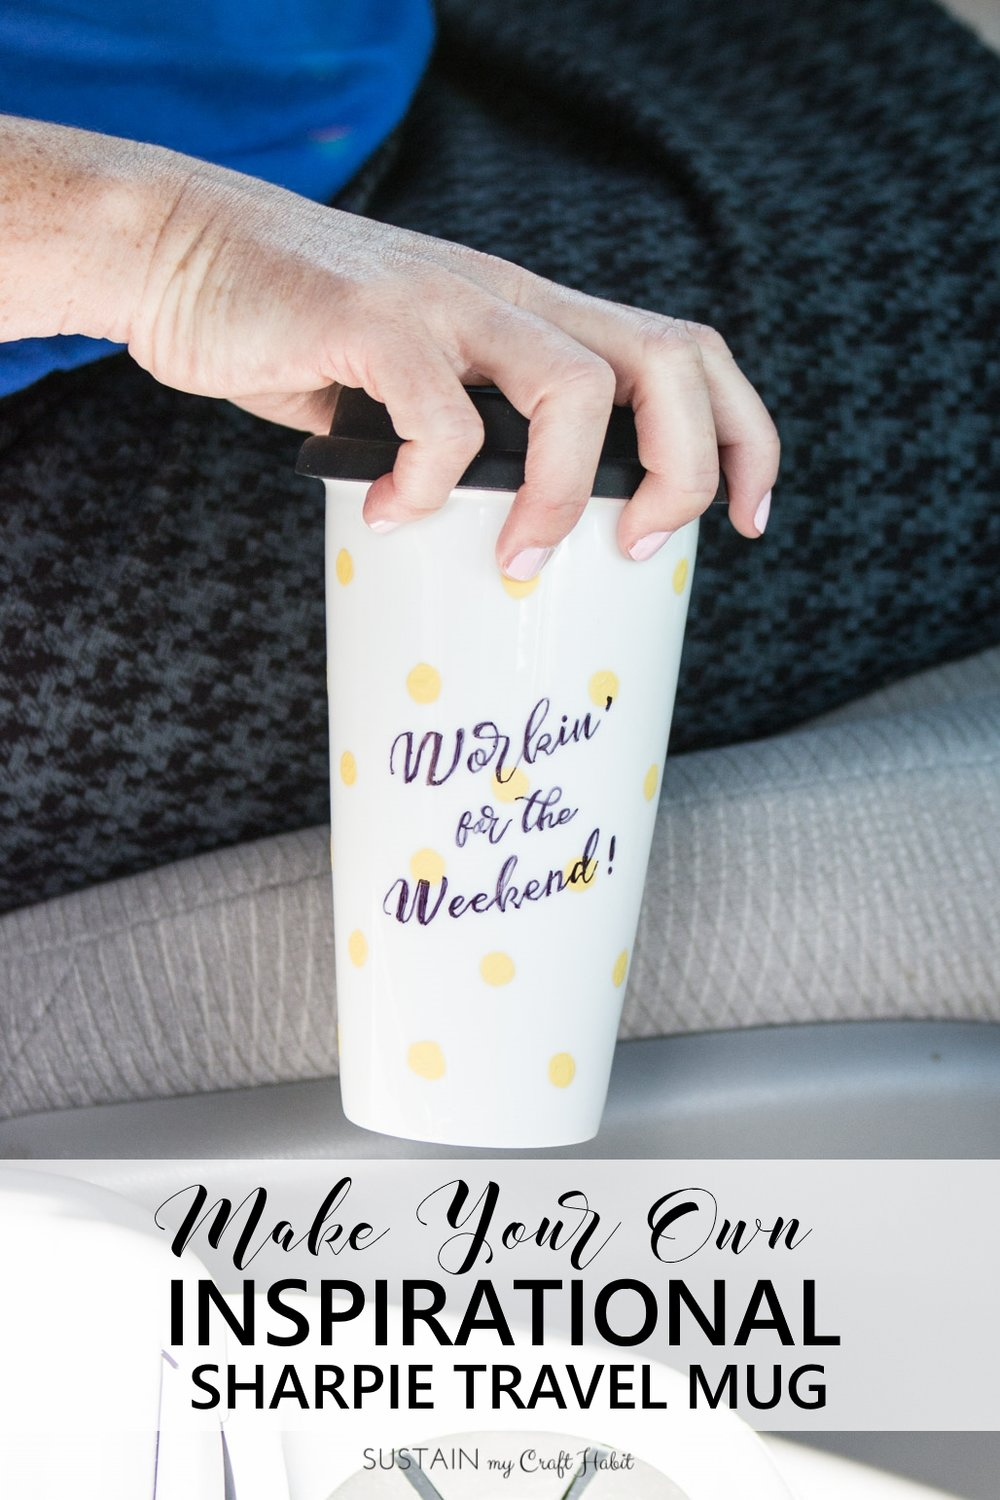 DIY motivational travel mug made with a Sharpie. Perfect gift idea for any coffee lover.